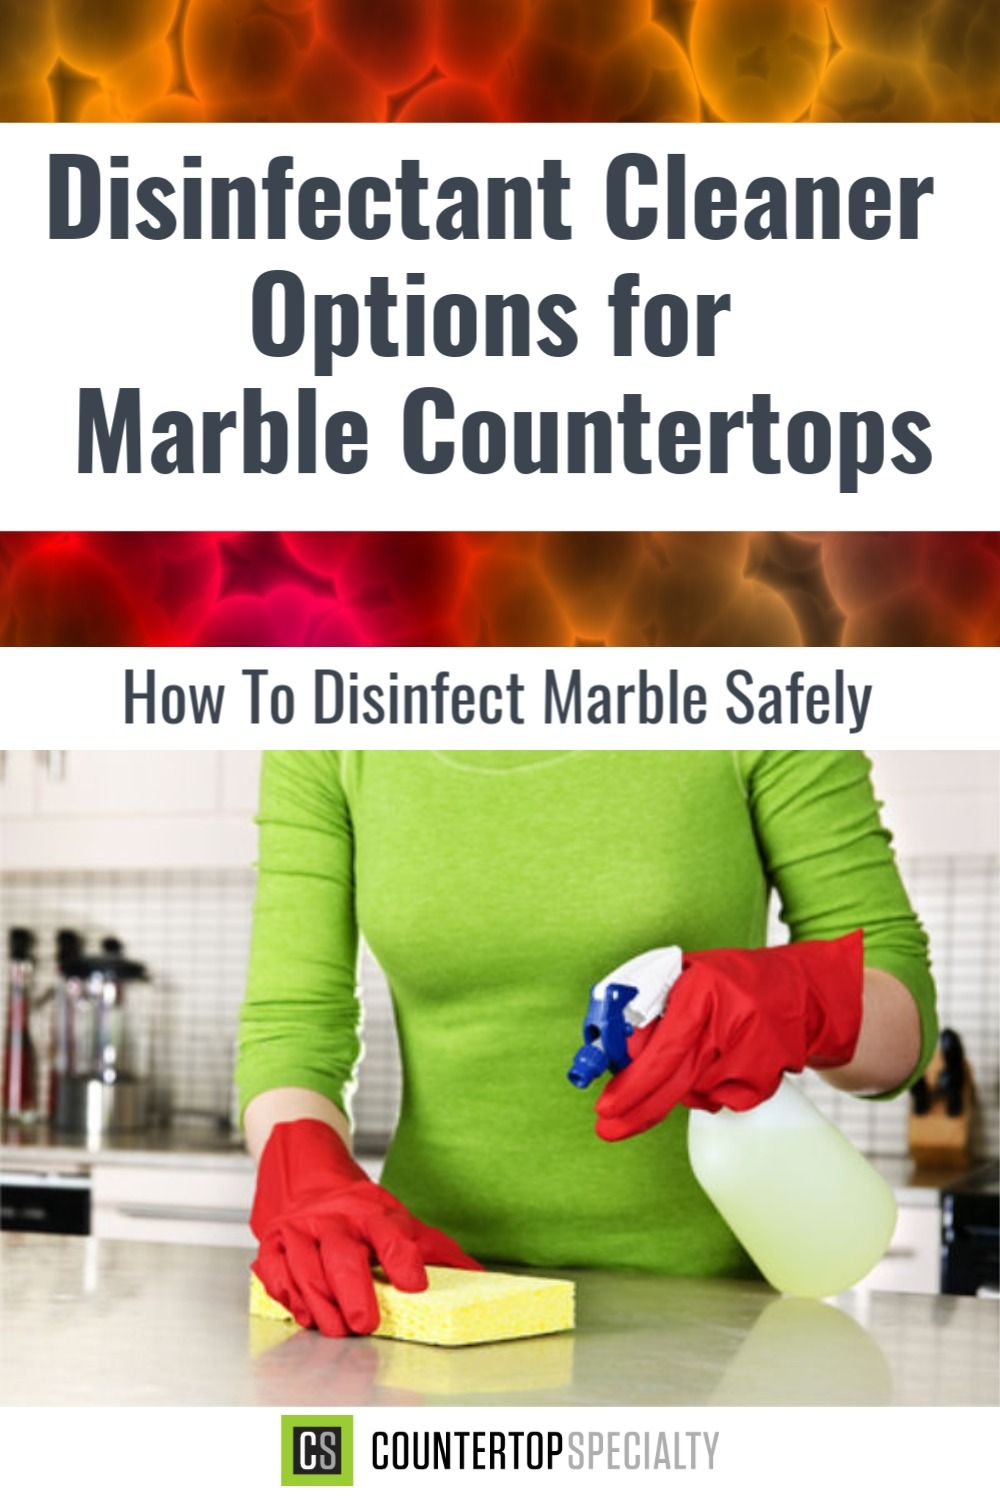 How To Disinfect Marble Countertops Safely In 2020 Marble Countertops Marble Countertops Bathroom Cleaning Marble Countertops